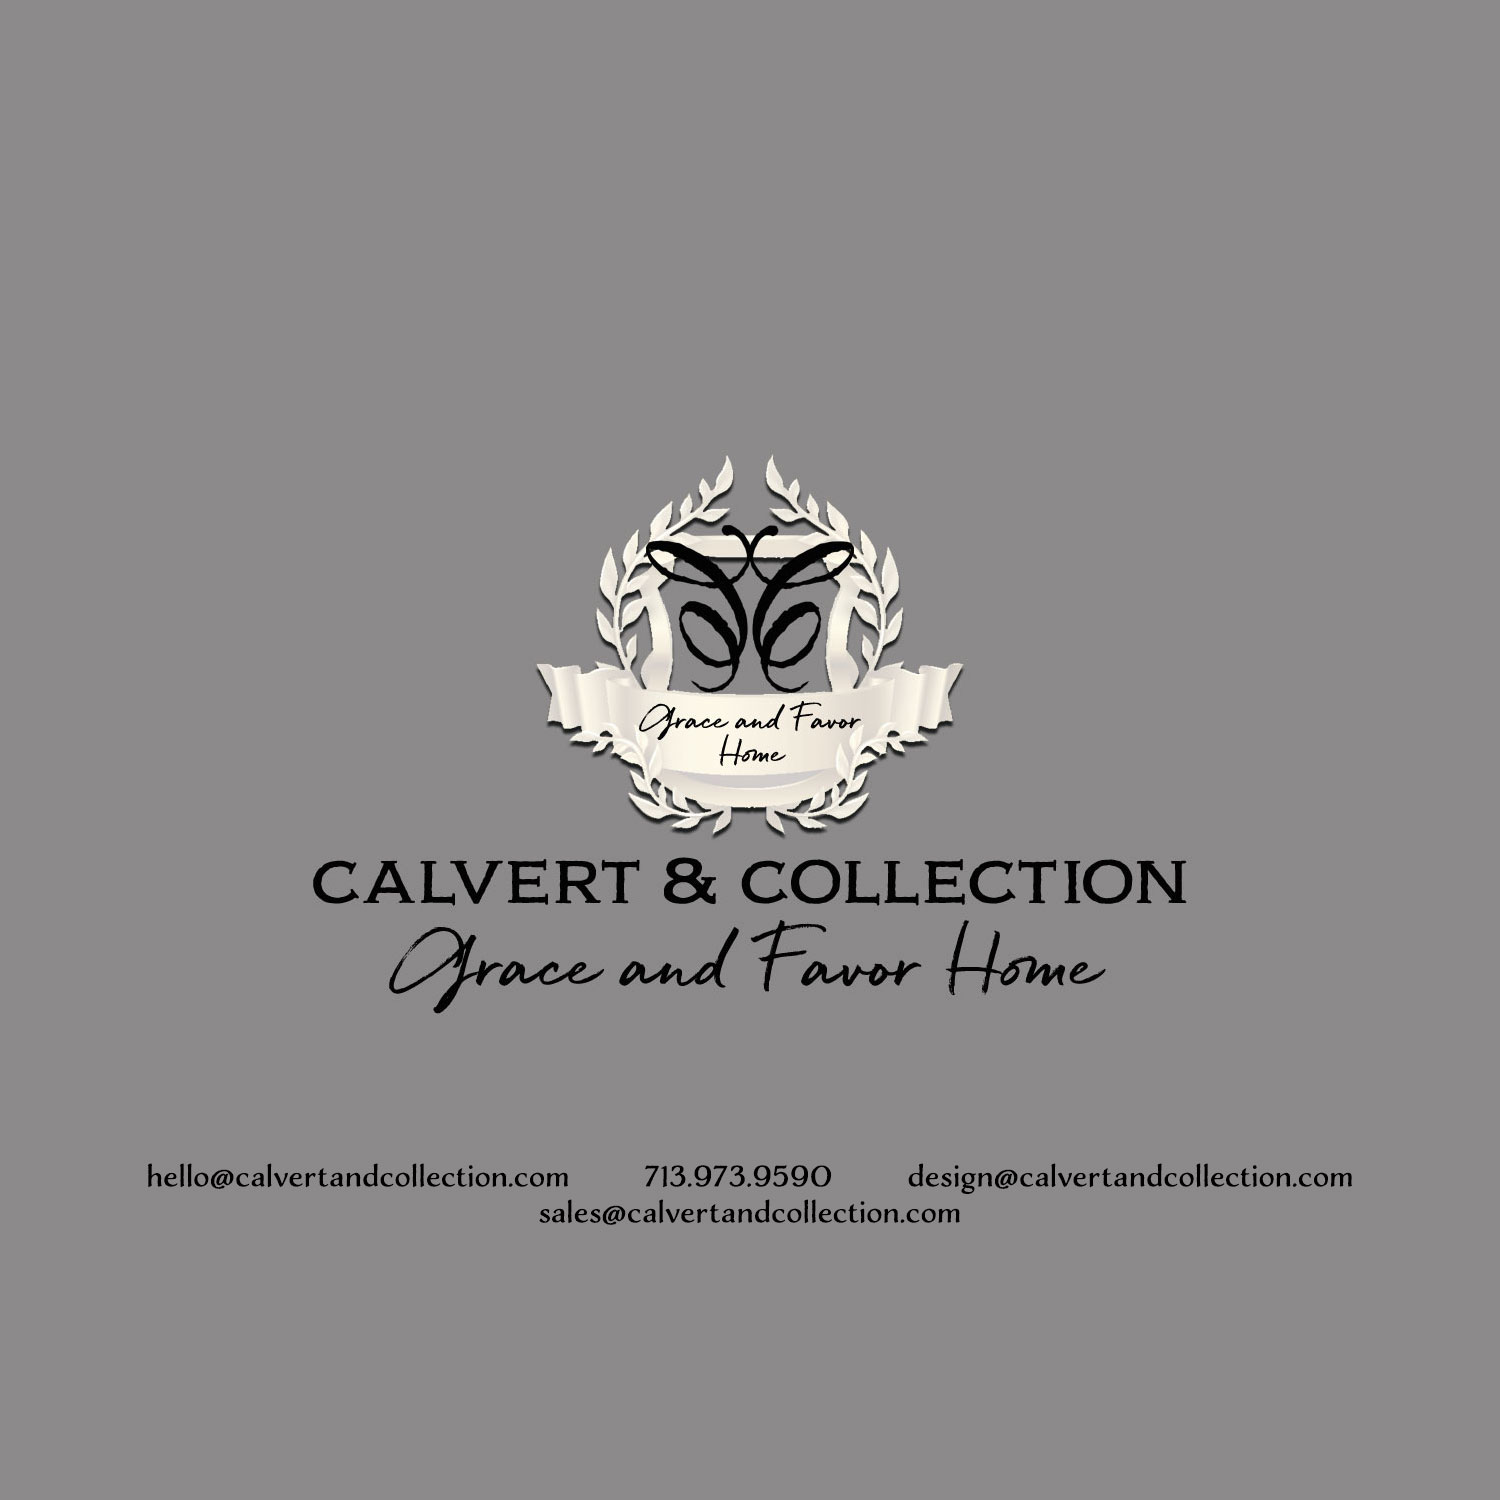 Calvert & Collection